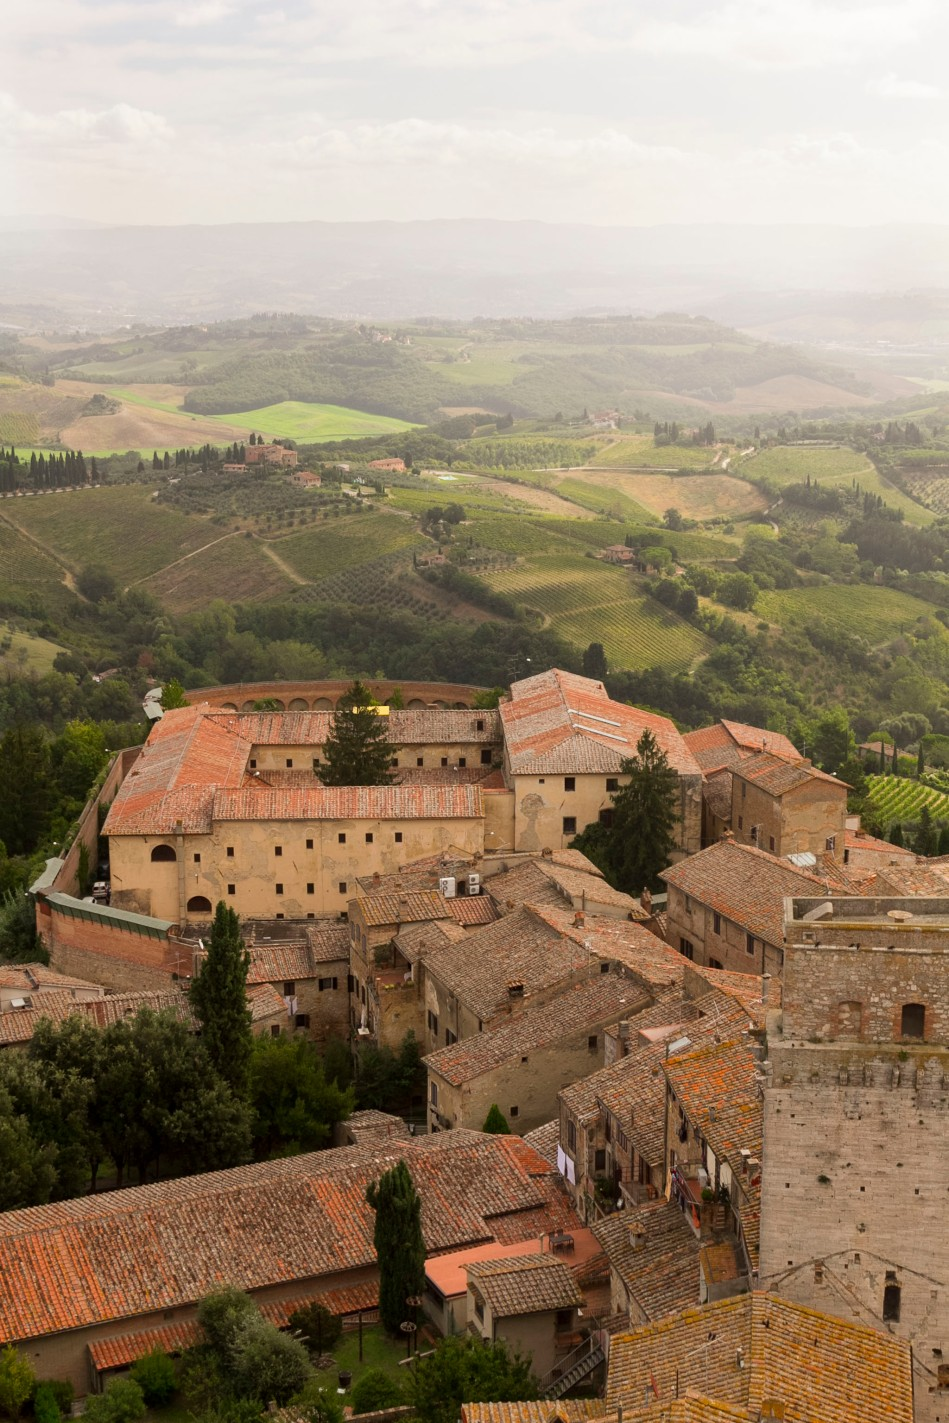 San Gimignano and surroundings